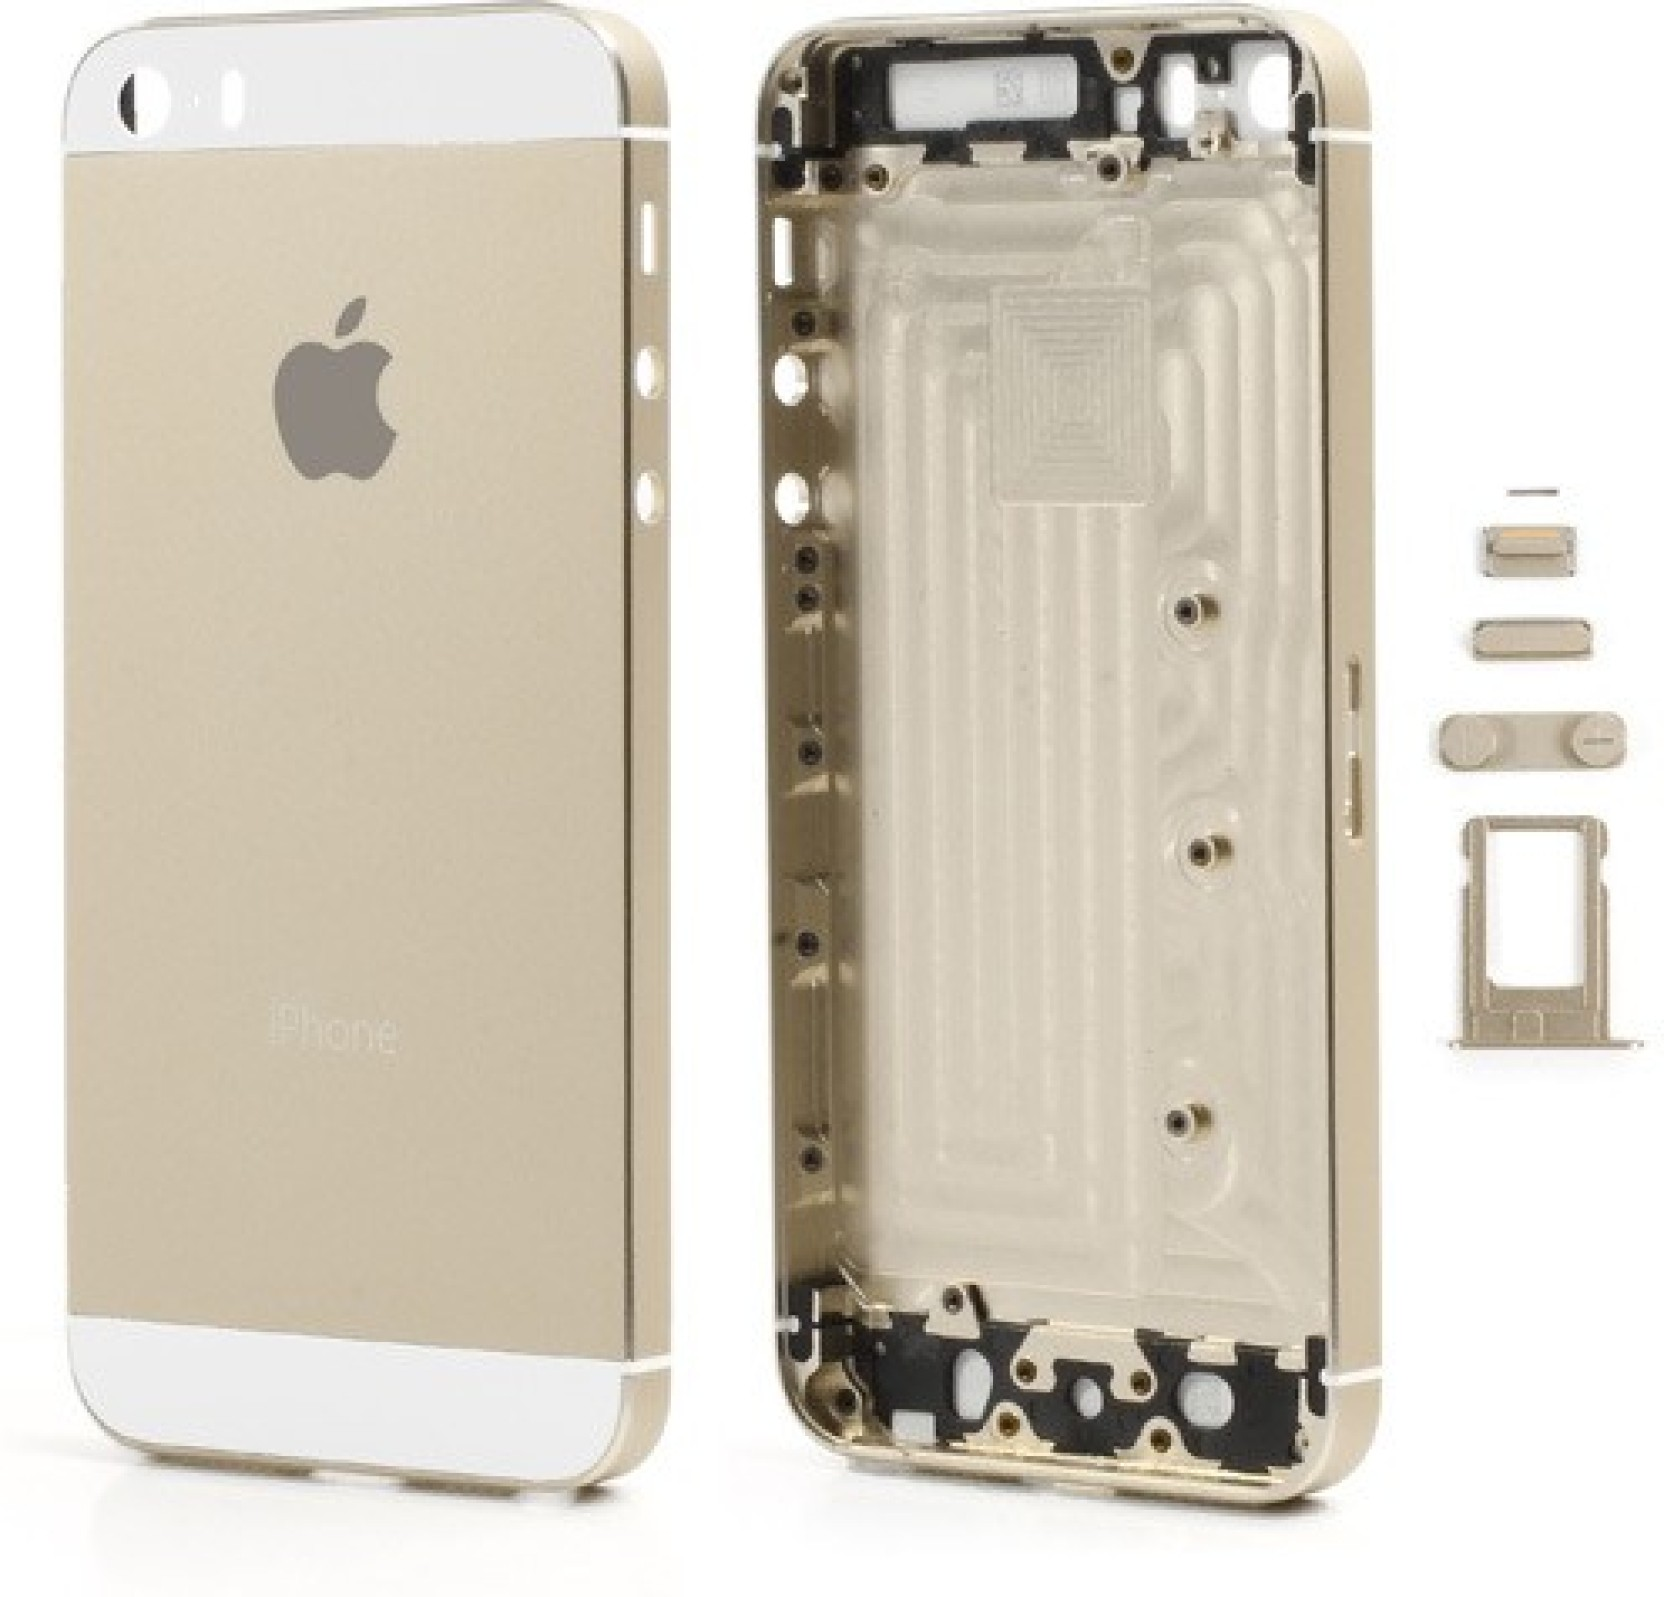 iphone 5s back replacement sozira back replacement cover for apple iphone 5s housing 14741